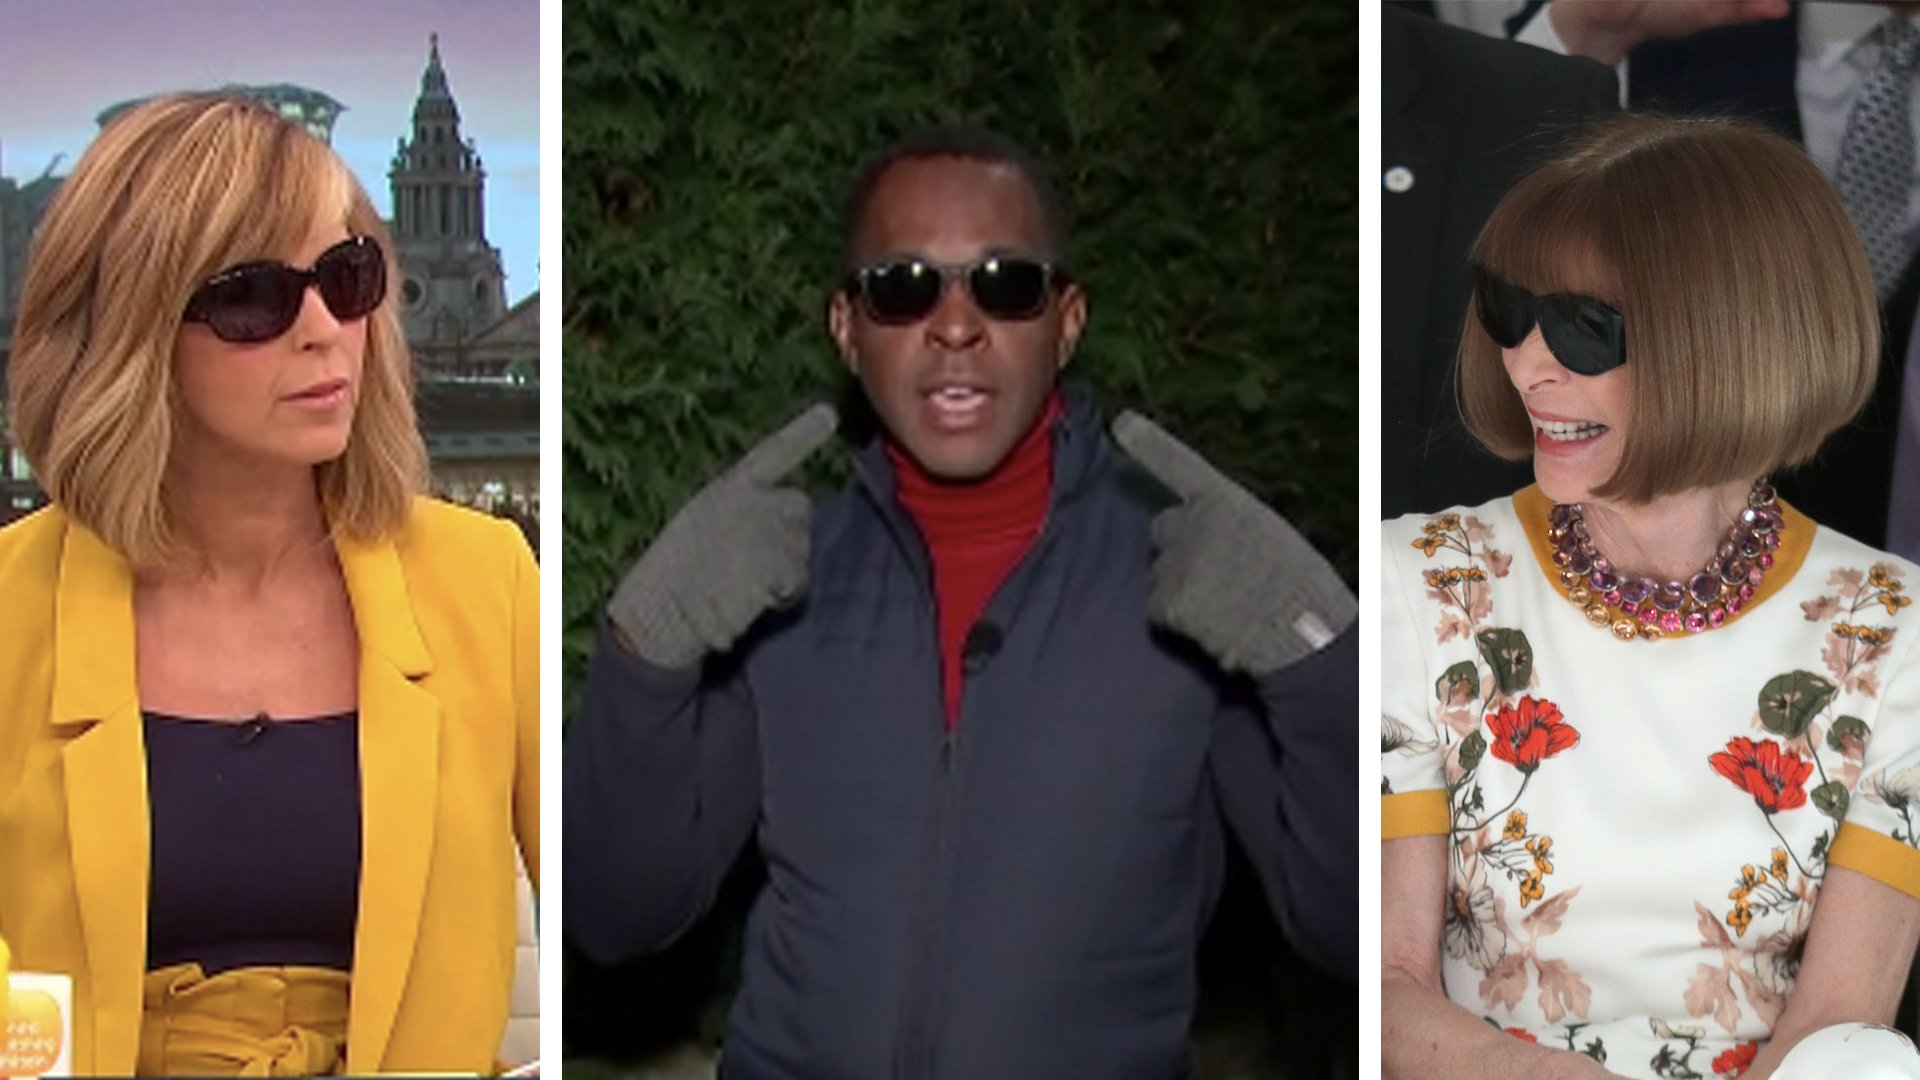 RT @GMB: Why are @andipeters and @kategarraway wearing sunglasses on #GMB?  🕶️ https://t.co/xV9HEaicJq https://t.co/Hz1cel1kC8